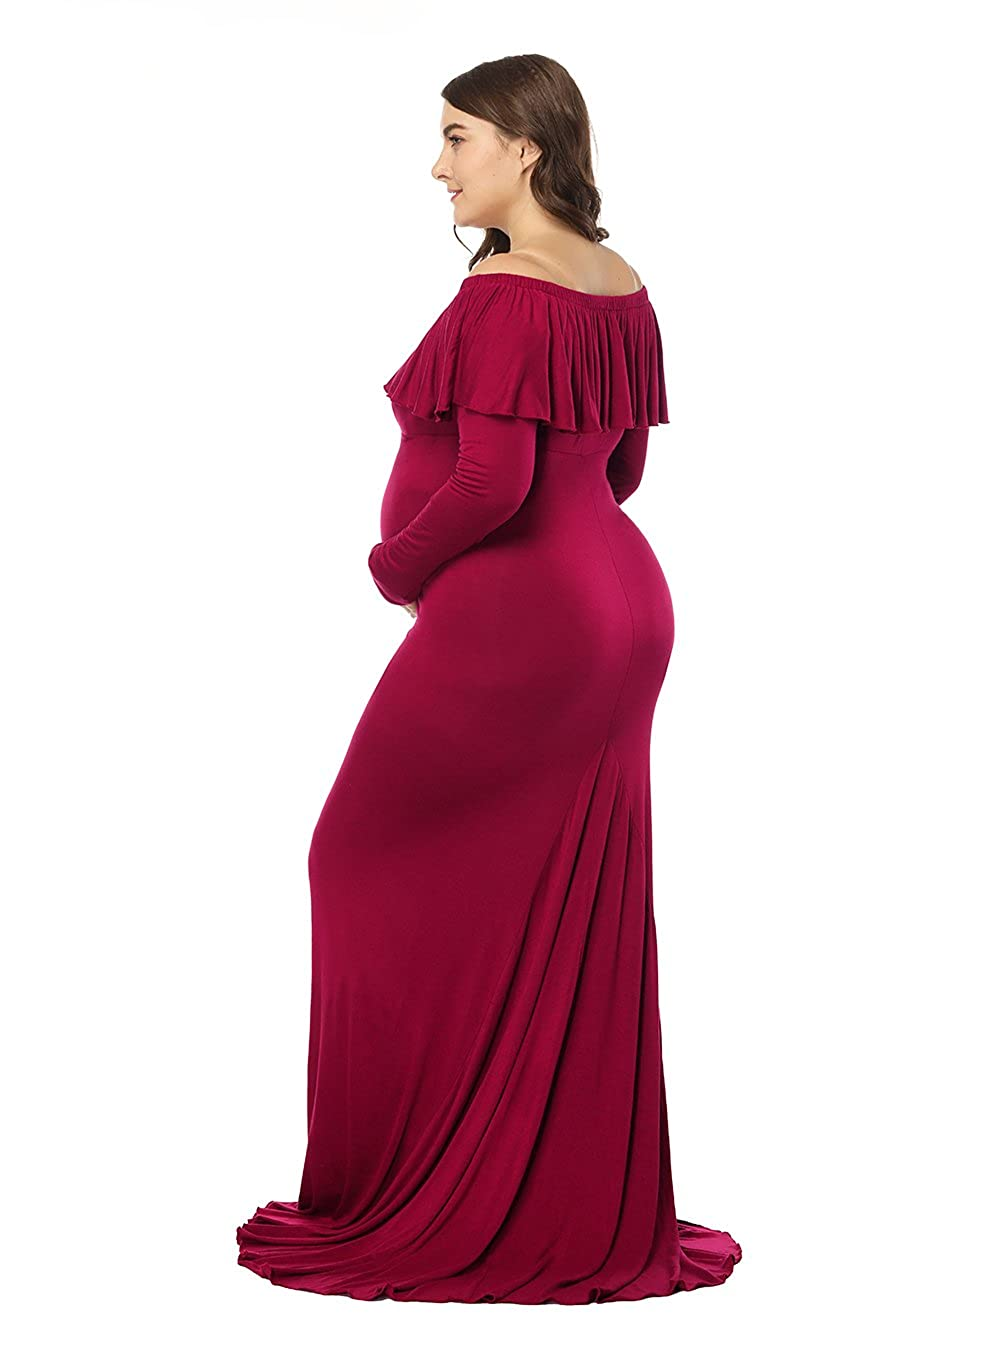 5131ee2fb987b JustVH Maternity Elegant Fitted Gown Off Shoulder Ruffles Long Sleeve Maxi  Photography Dress at Amazon Women's Clothing store: